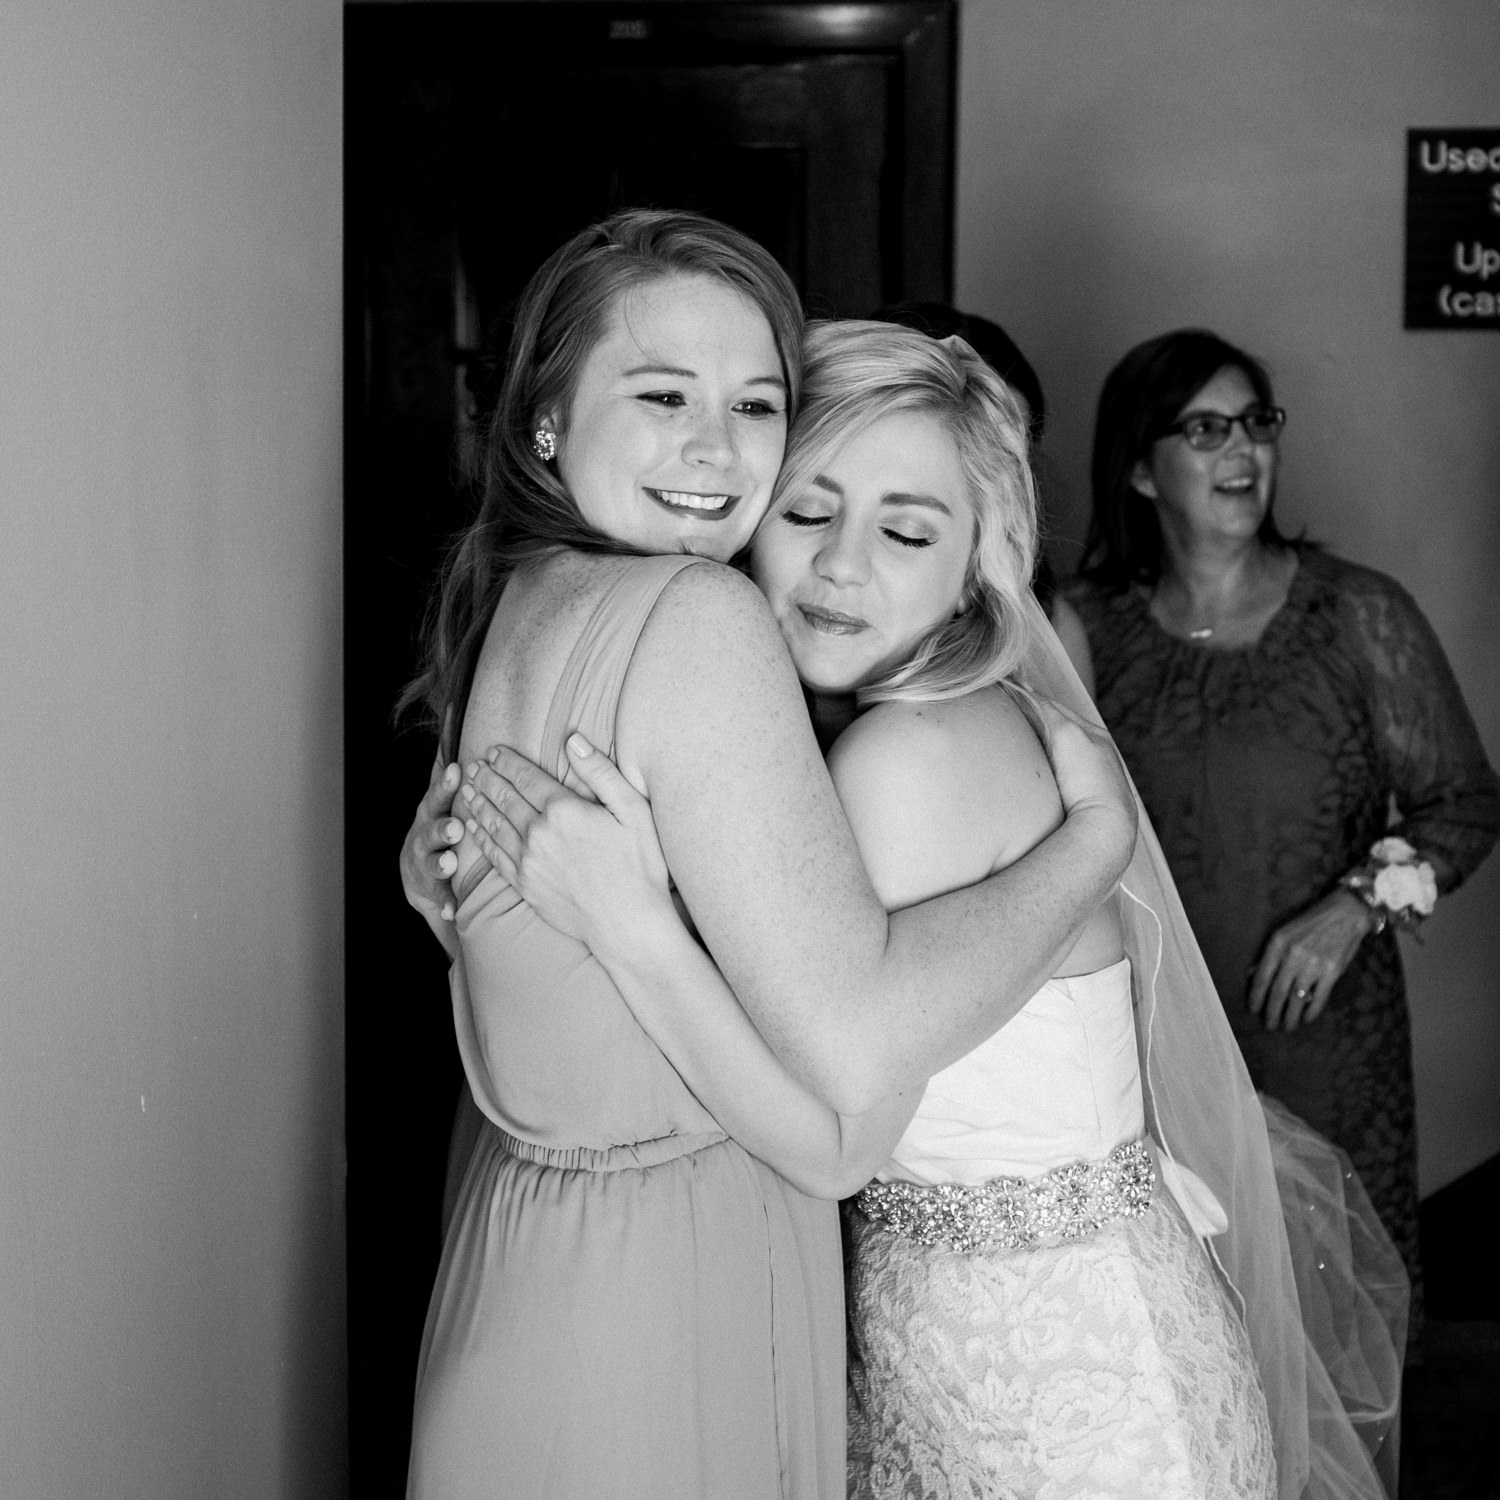 Dodge City, Kansas Wedding-Dodge City, Kansas Wedding Photographer-Dodge City Photographer-Neal Dieker-191.jpg